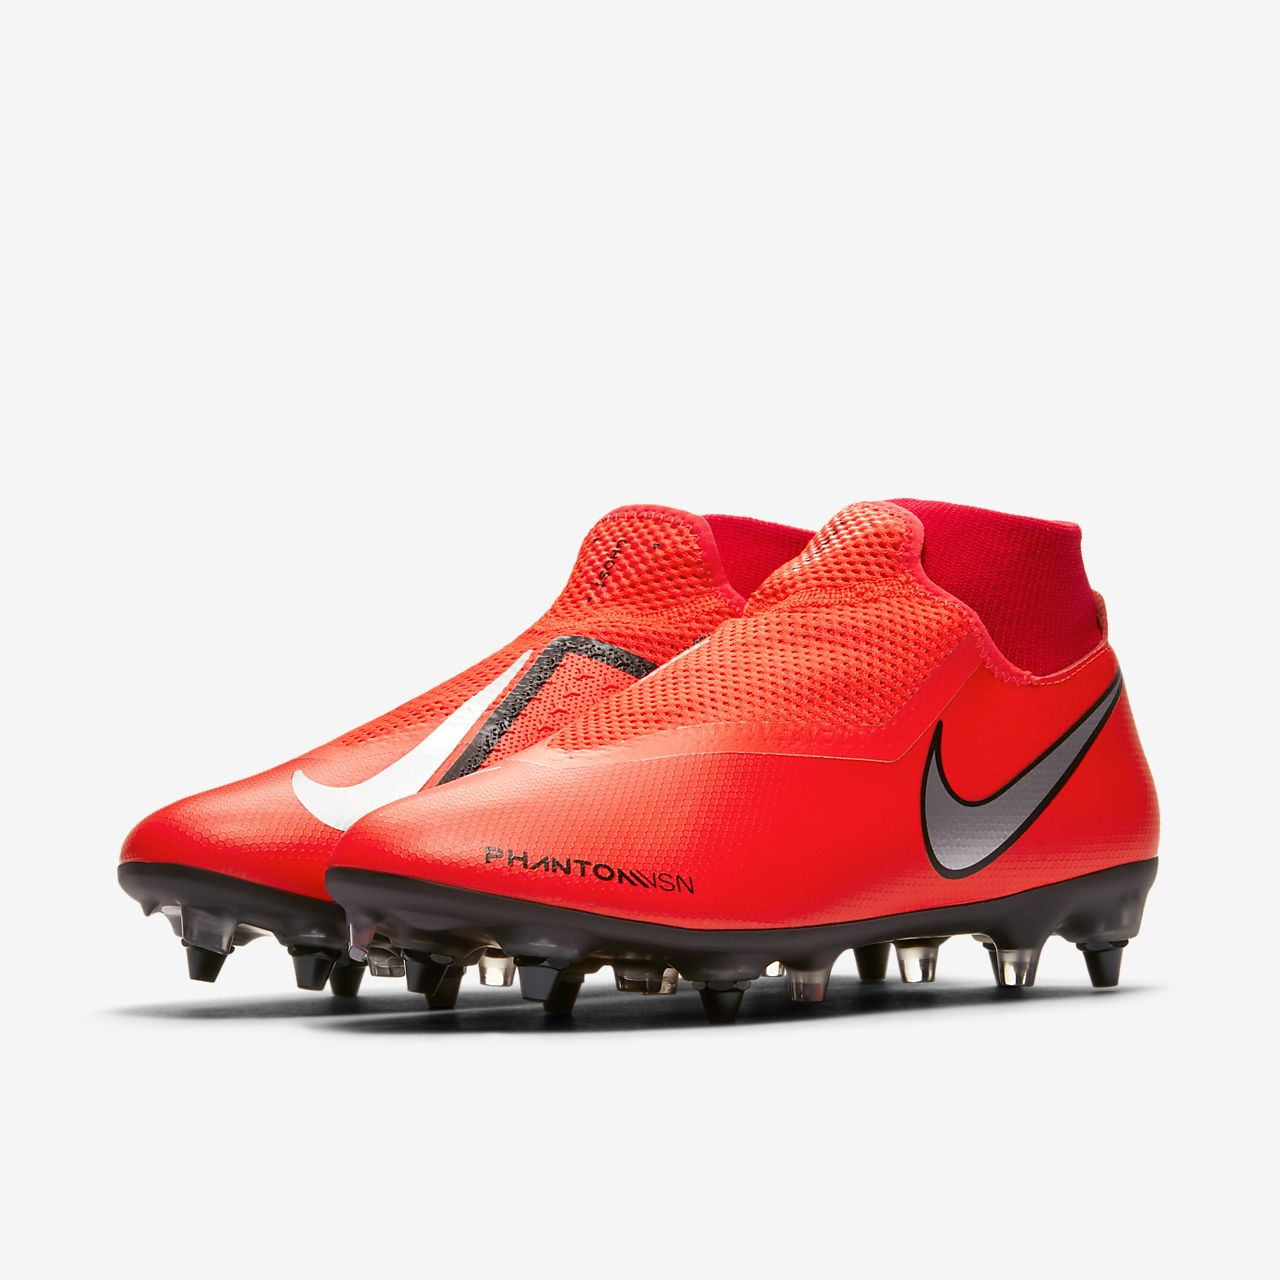 finest selection 9cd32 1b6ae ... Nike PhantomVSN Academy Dynamic Fit SG-Pro Anti-Clog Traction  Voetbalschoen (zachte ondergrond